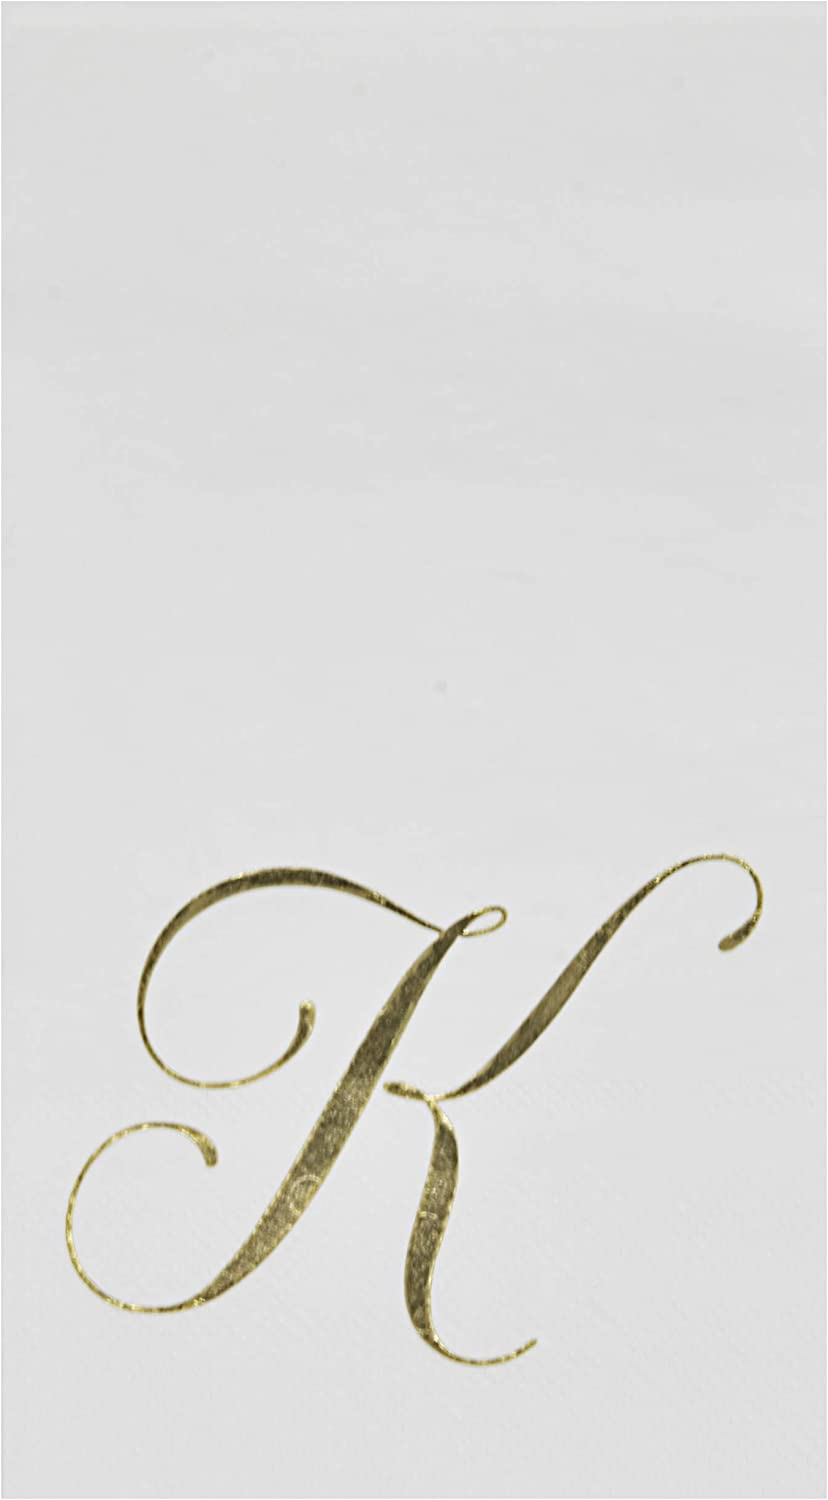 100 Gold Monogram Guest Napkins Letter K Disposable Paper Pack Elegant Metallic Golden Foil Dinner Hand Napkin for Bathroom Powder Room Wedding Holiday Birthday Party Baby Shower Decorative Towels